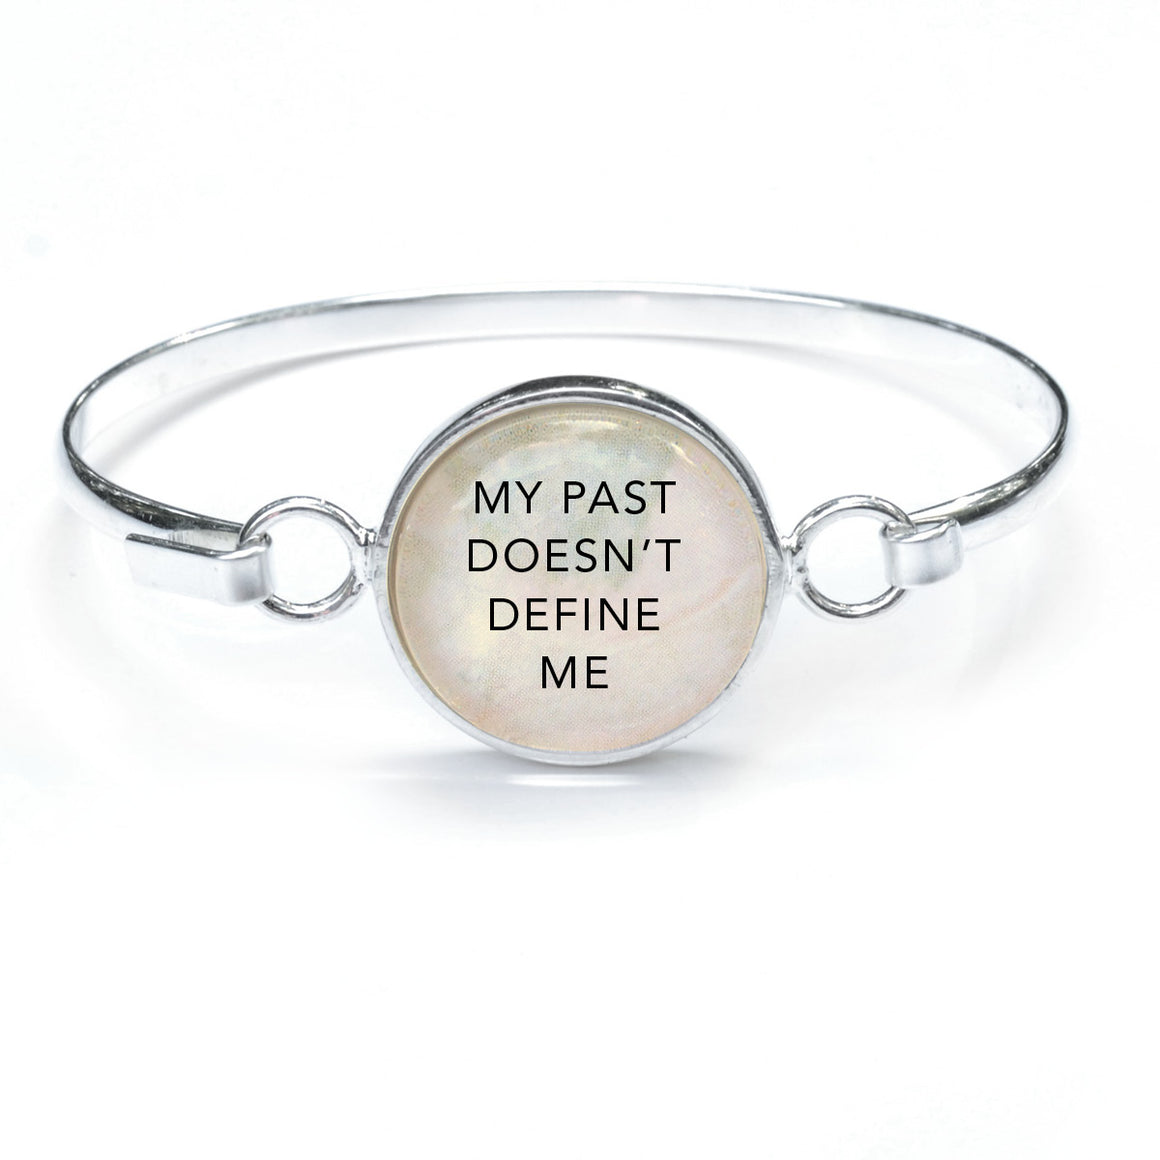 """My Past Doesn't Define Me"" Silver-Plated Bangle Bracelet with Glass Charm - 3 Sizes"